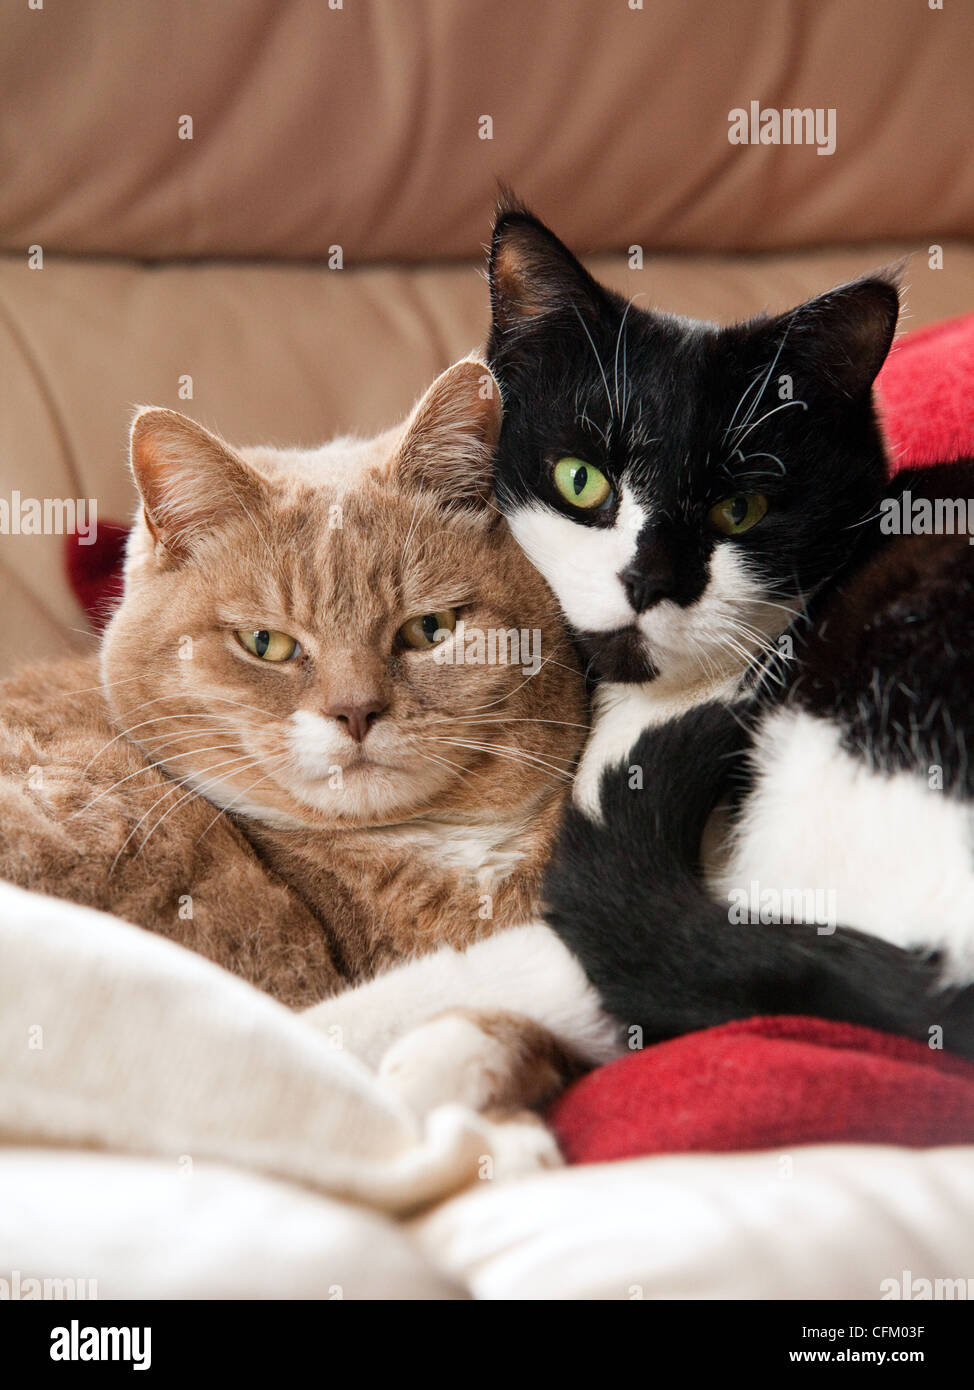 A pair of short-haired domestic cats cuddling together indoors, UK Stock Photo